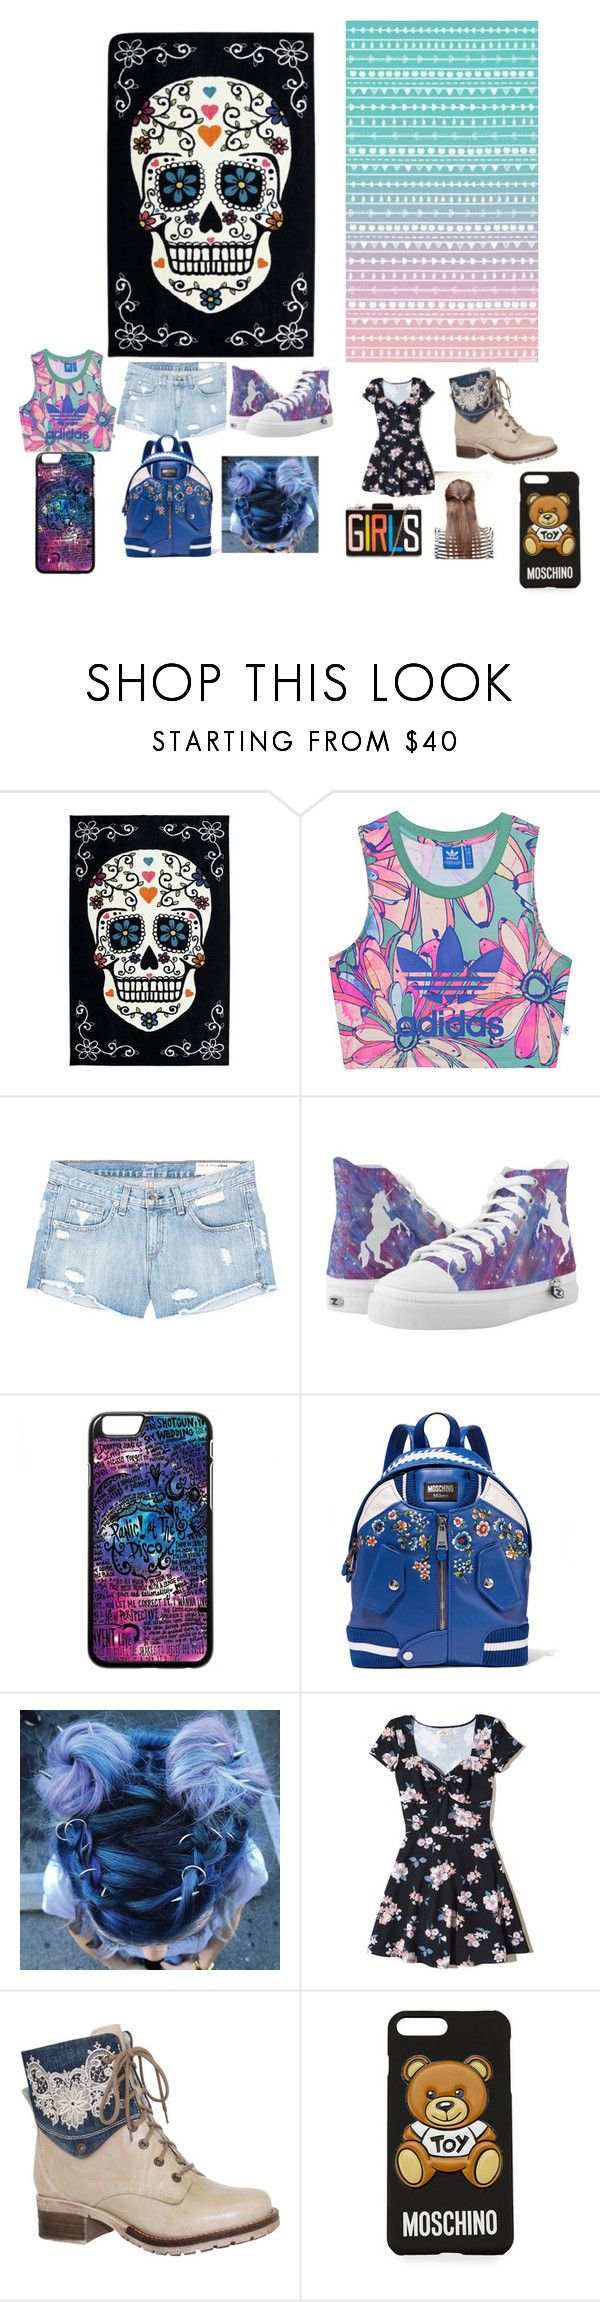 """""""Tomboy vs Girly Girl"""" by hotpink179 ❤ liked on Polyvore featuring adidas Originals, rag & bone/JEAN, Moschino, Hollister Co., Dromedaris, girly, tomboy and fashionset"""